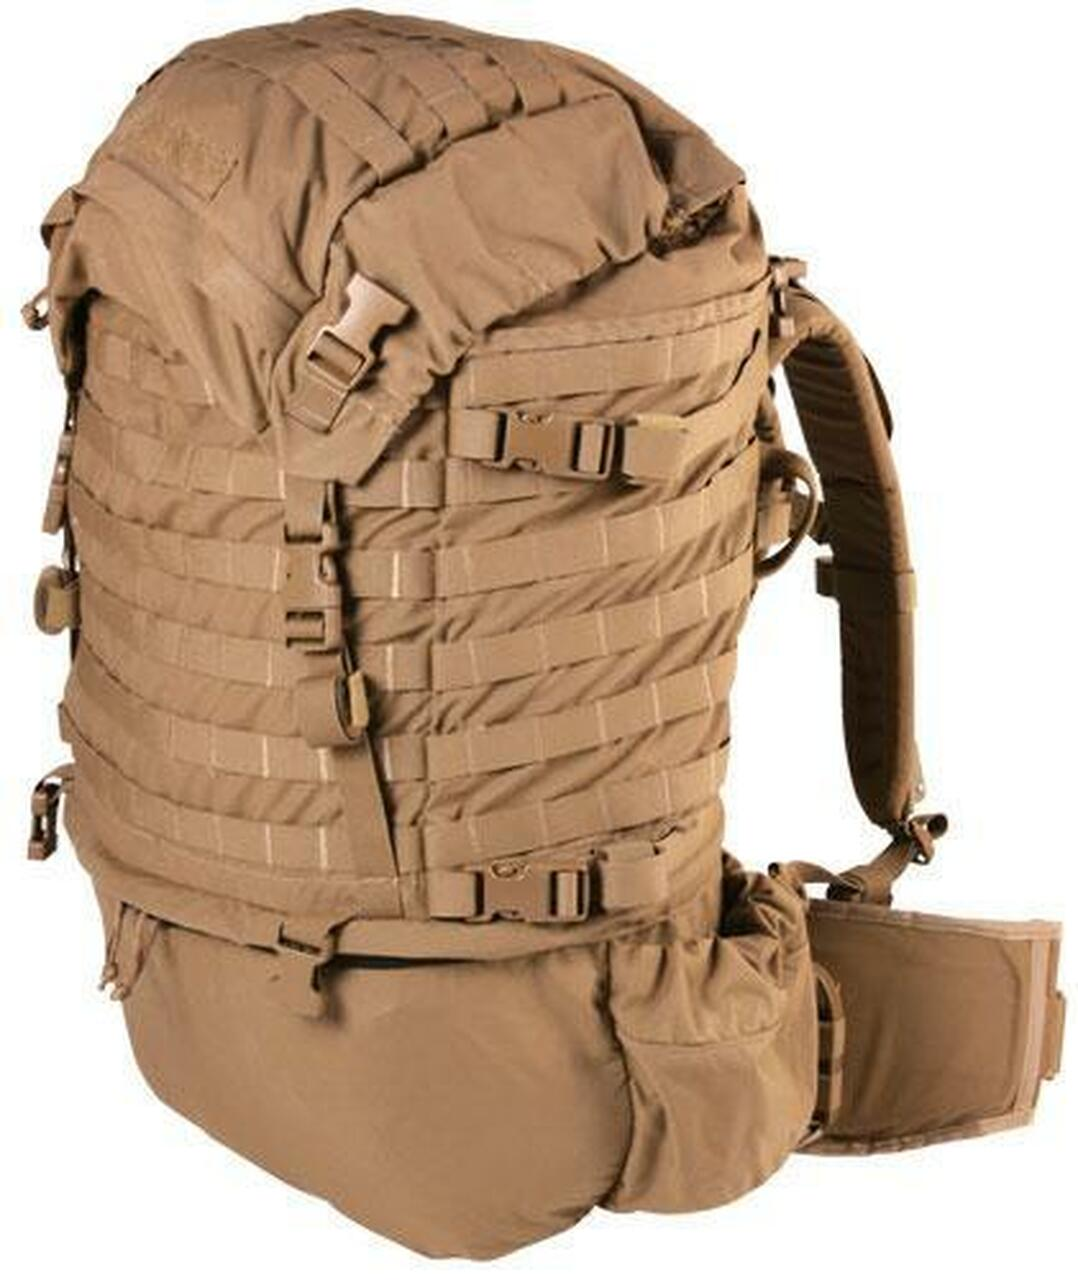 Surplus USMC FILBE Large Molle Rucksack - Coyote